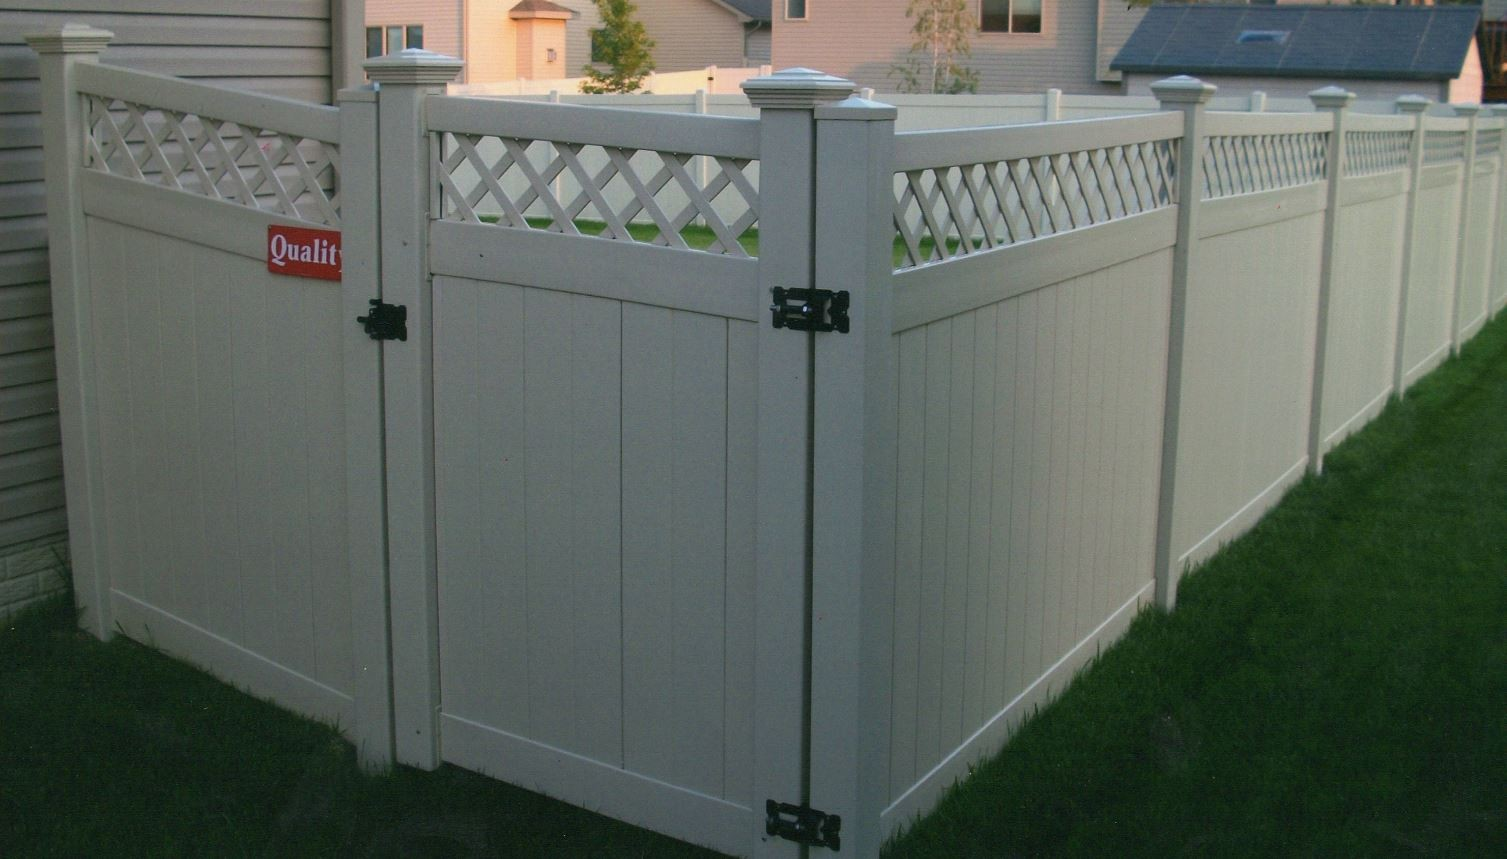 Fencing Products About Quality Fence Omaha Ne